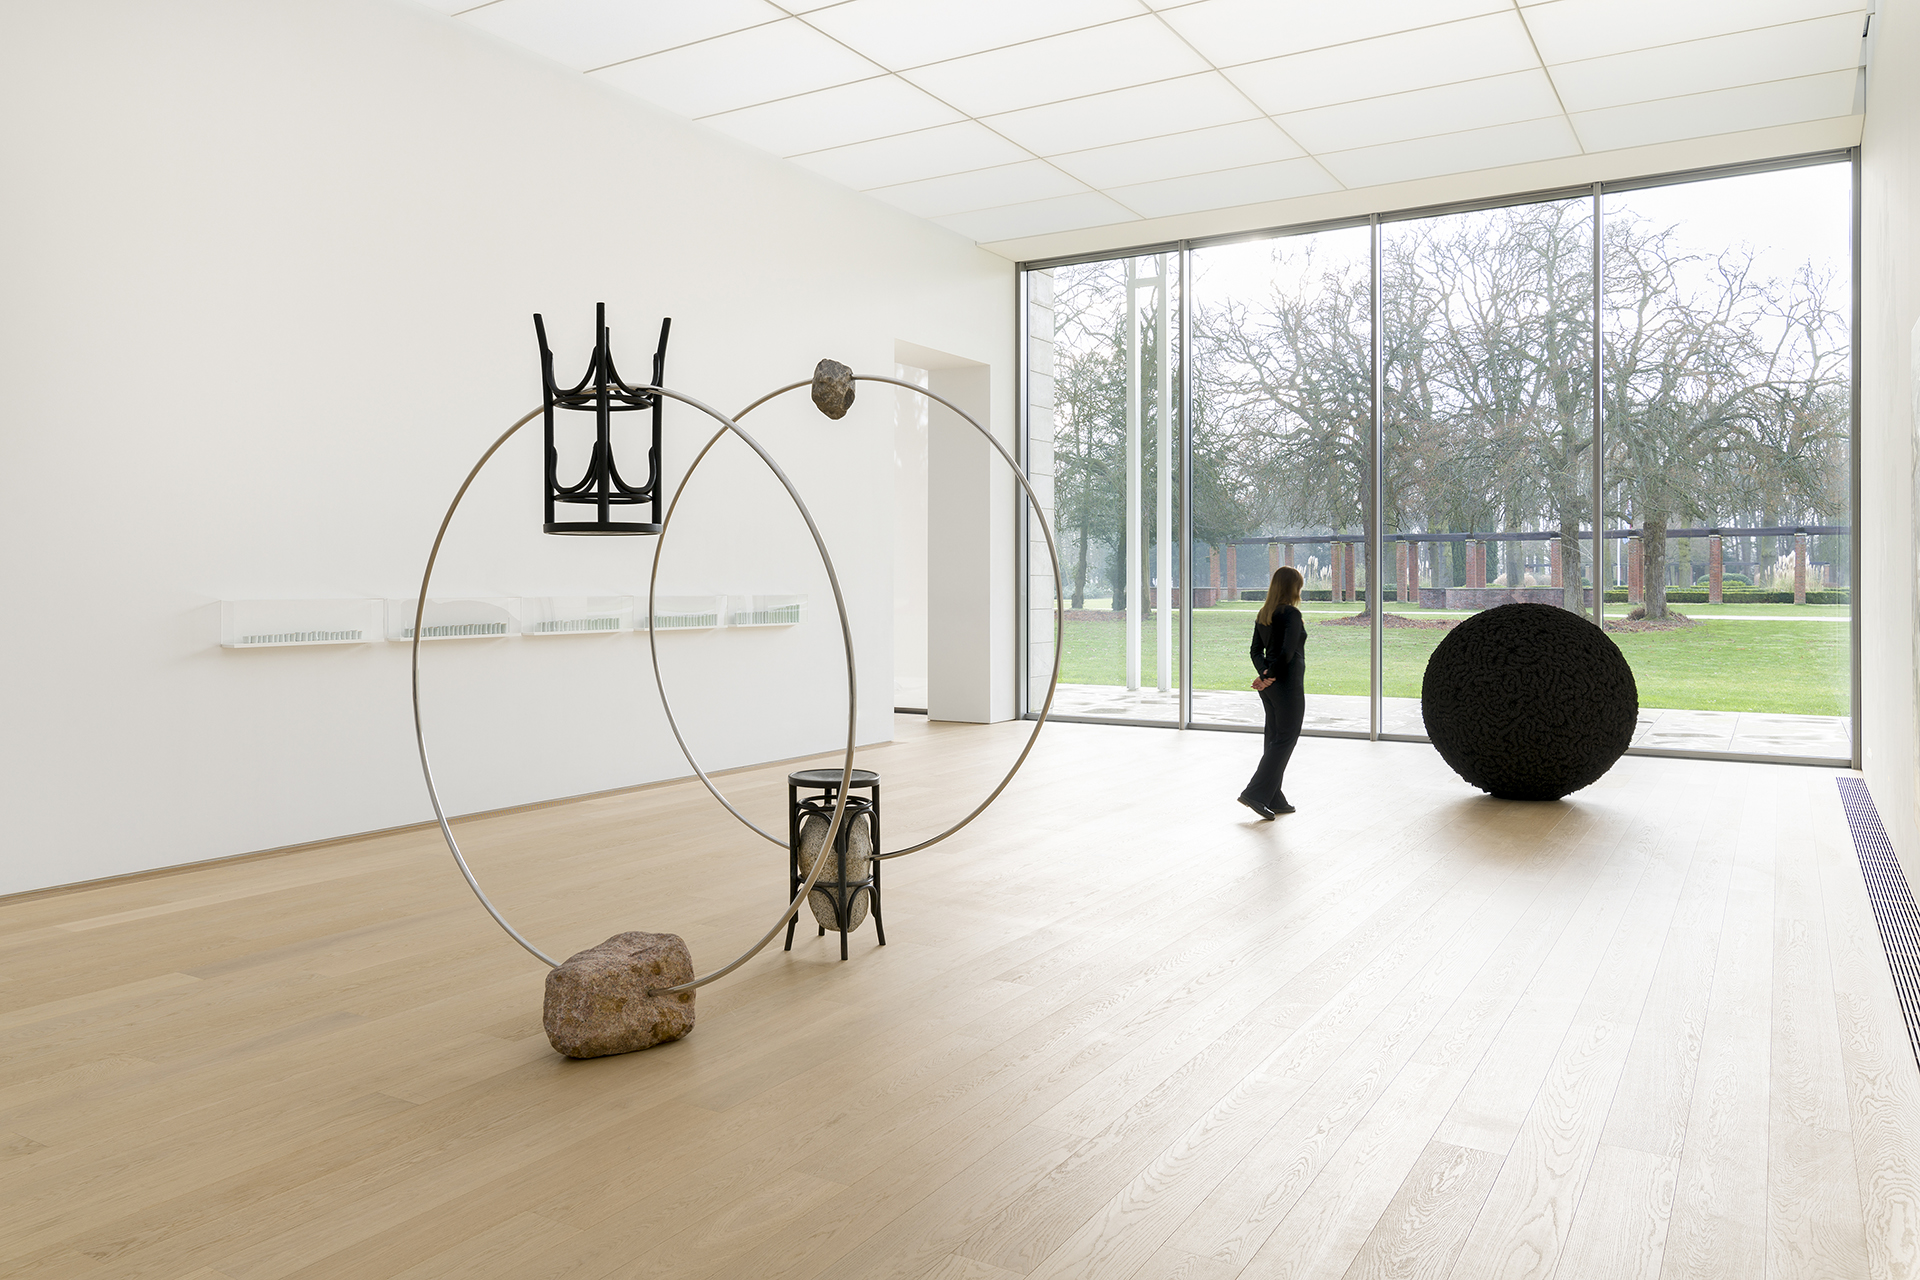 Installation view Momentum museum Voorlinden